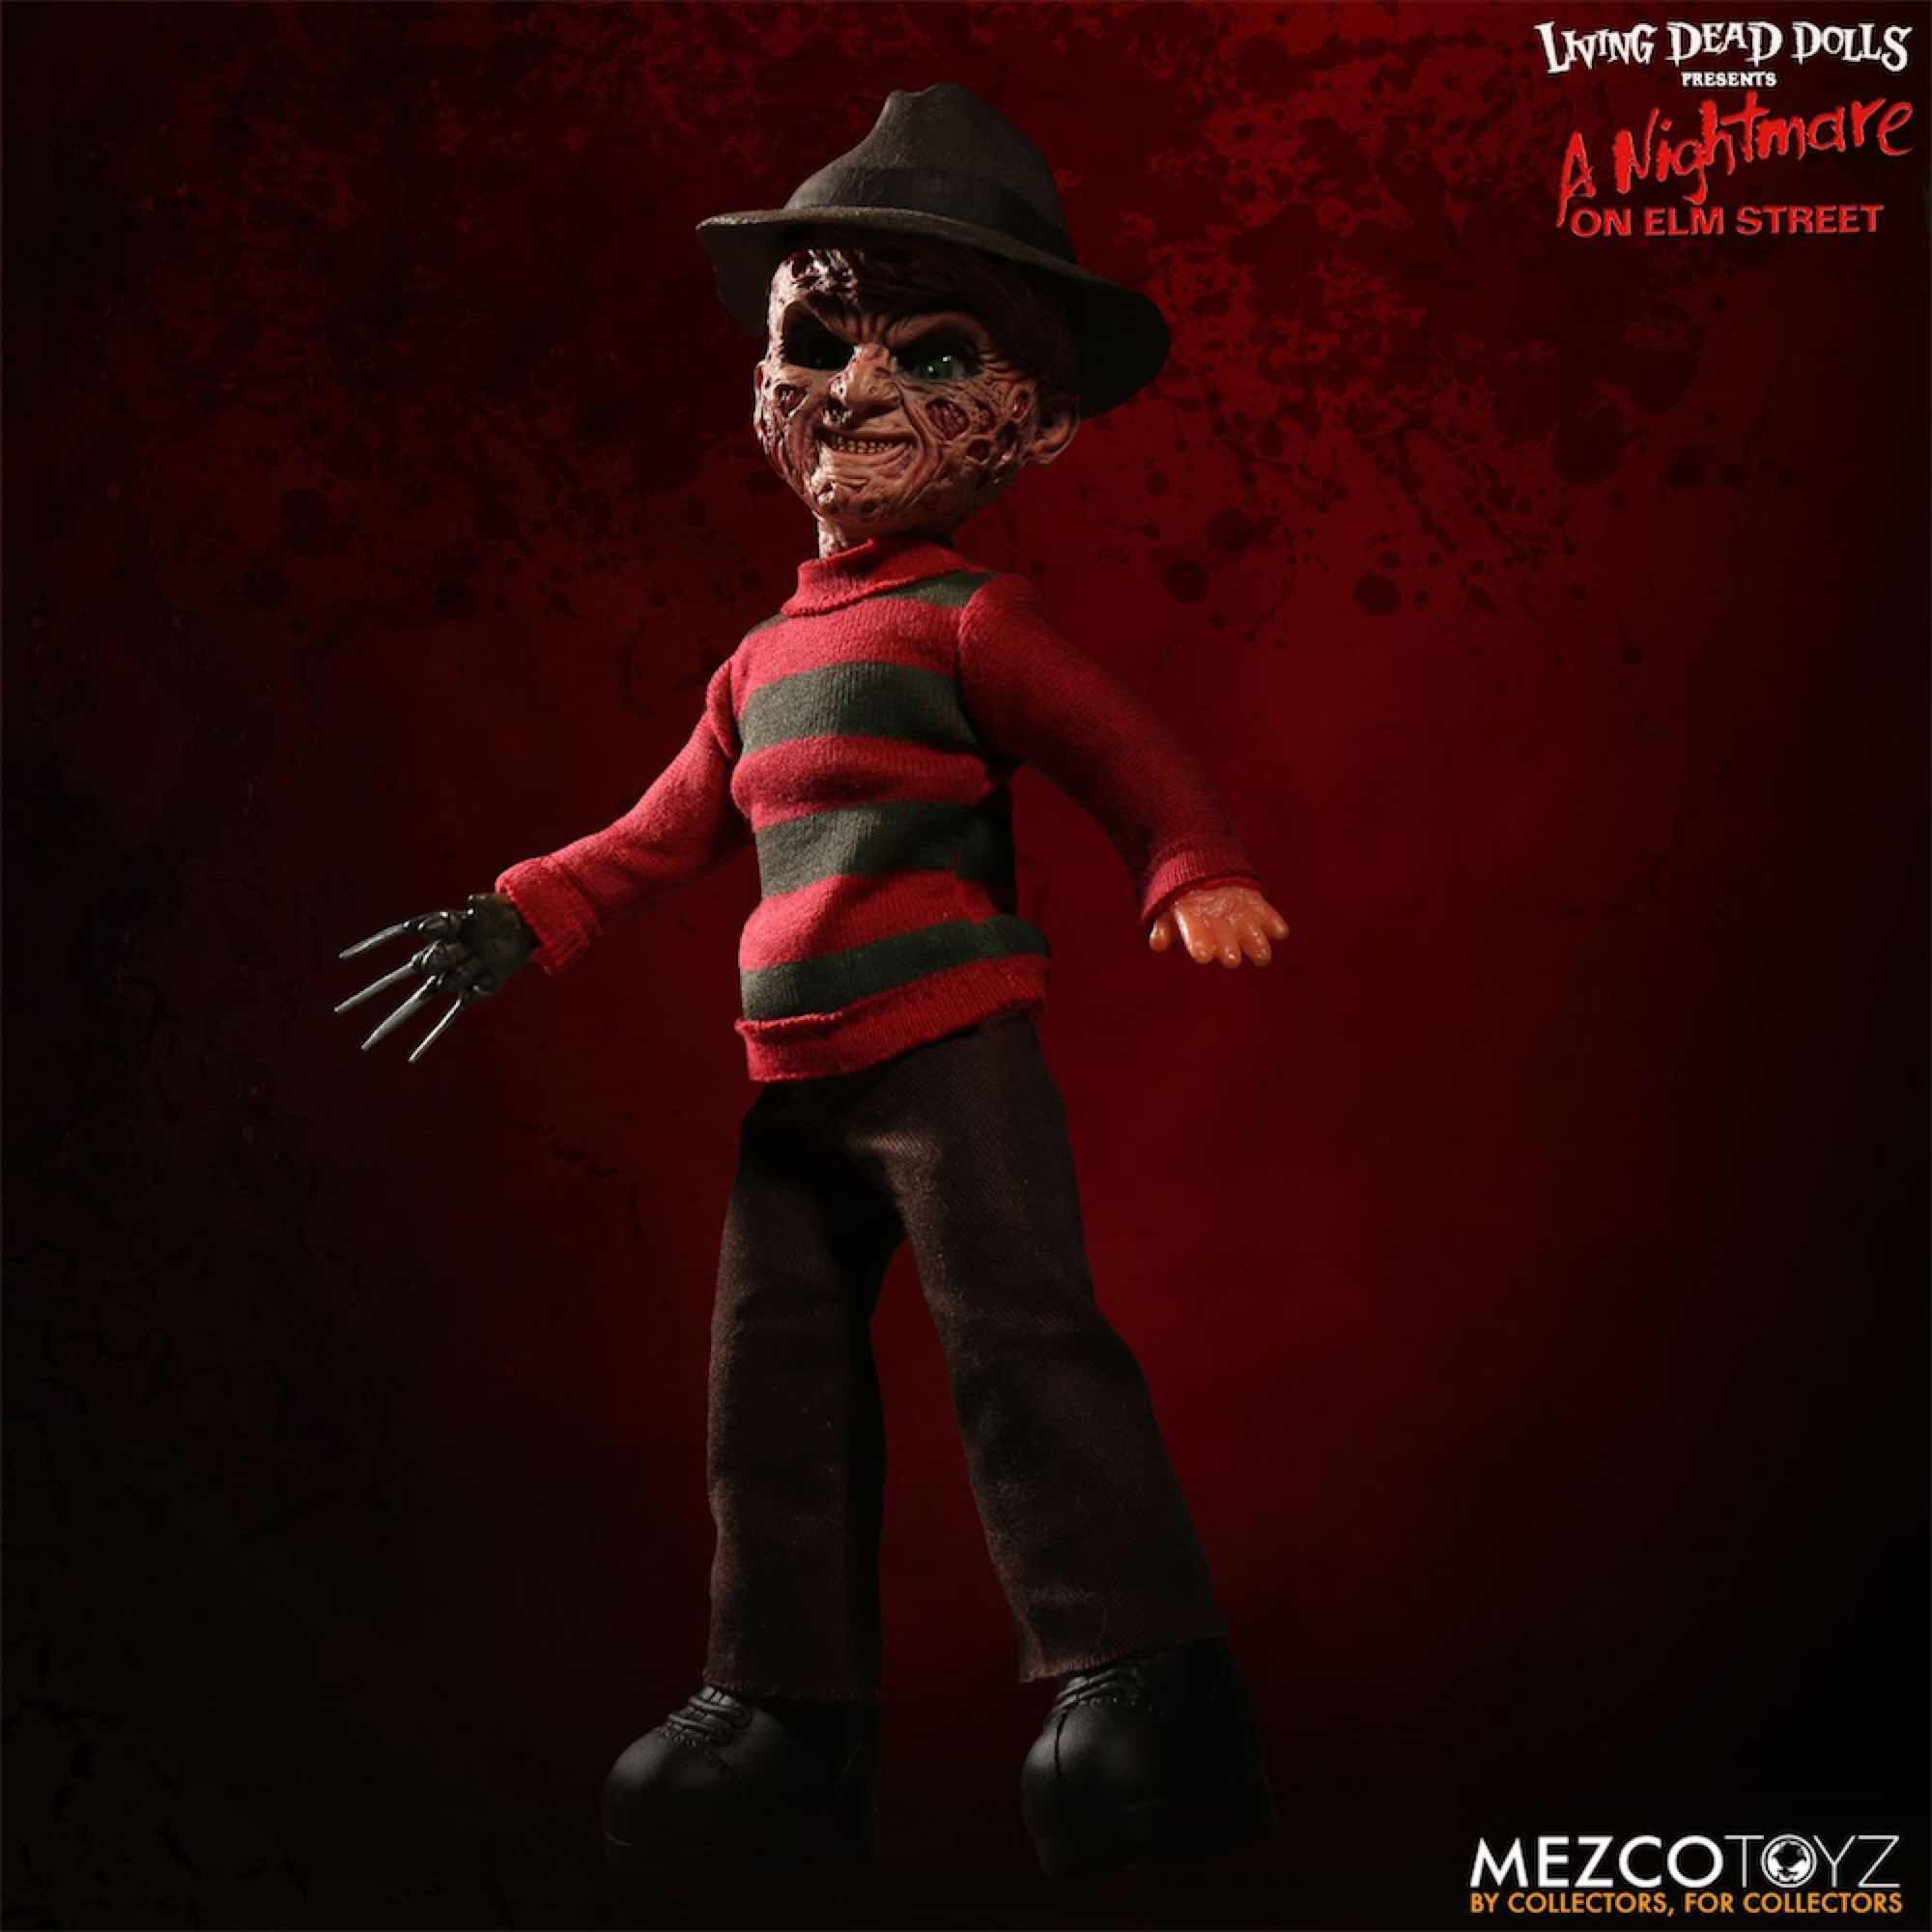 LDD FREDDY KRUEGER CON SONIDO FIGURA 25 CM LIVING DEAD DOLLS NIGHTMARE ON ELM STREET